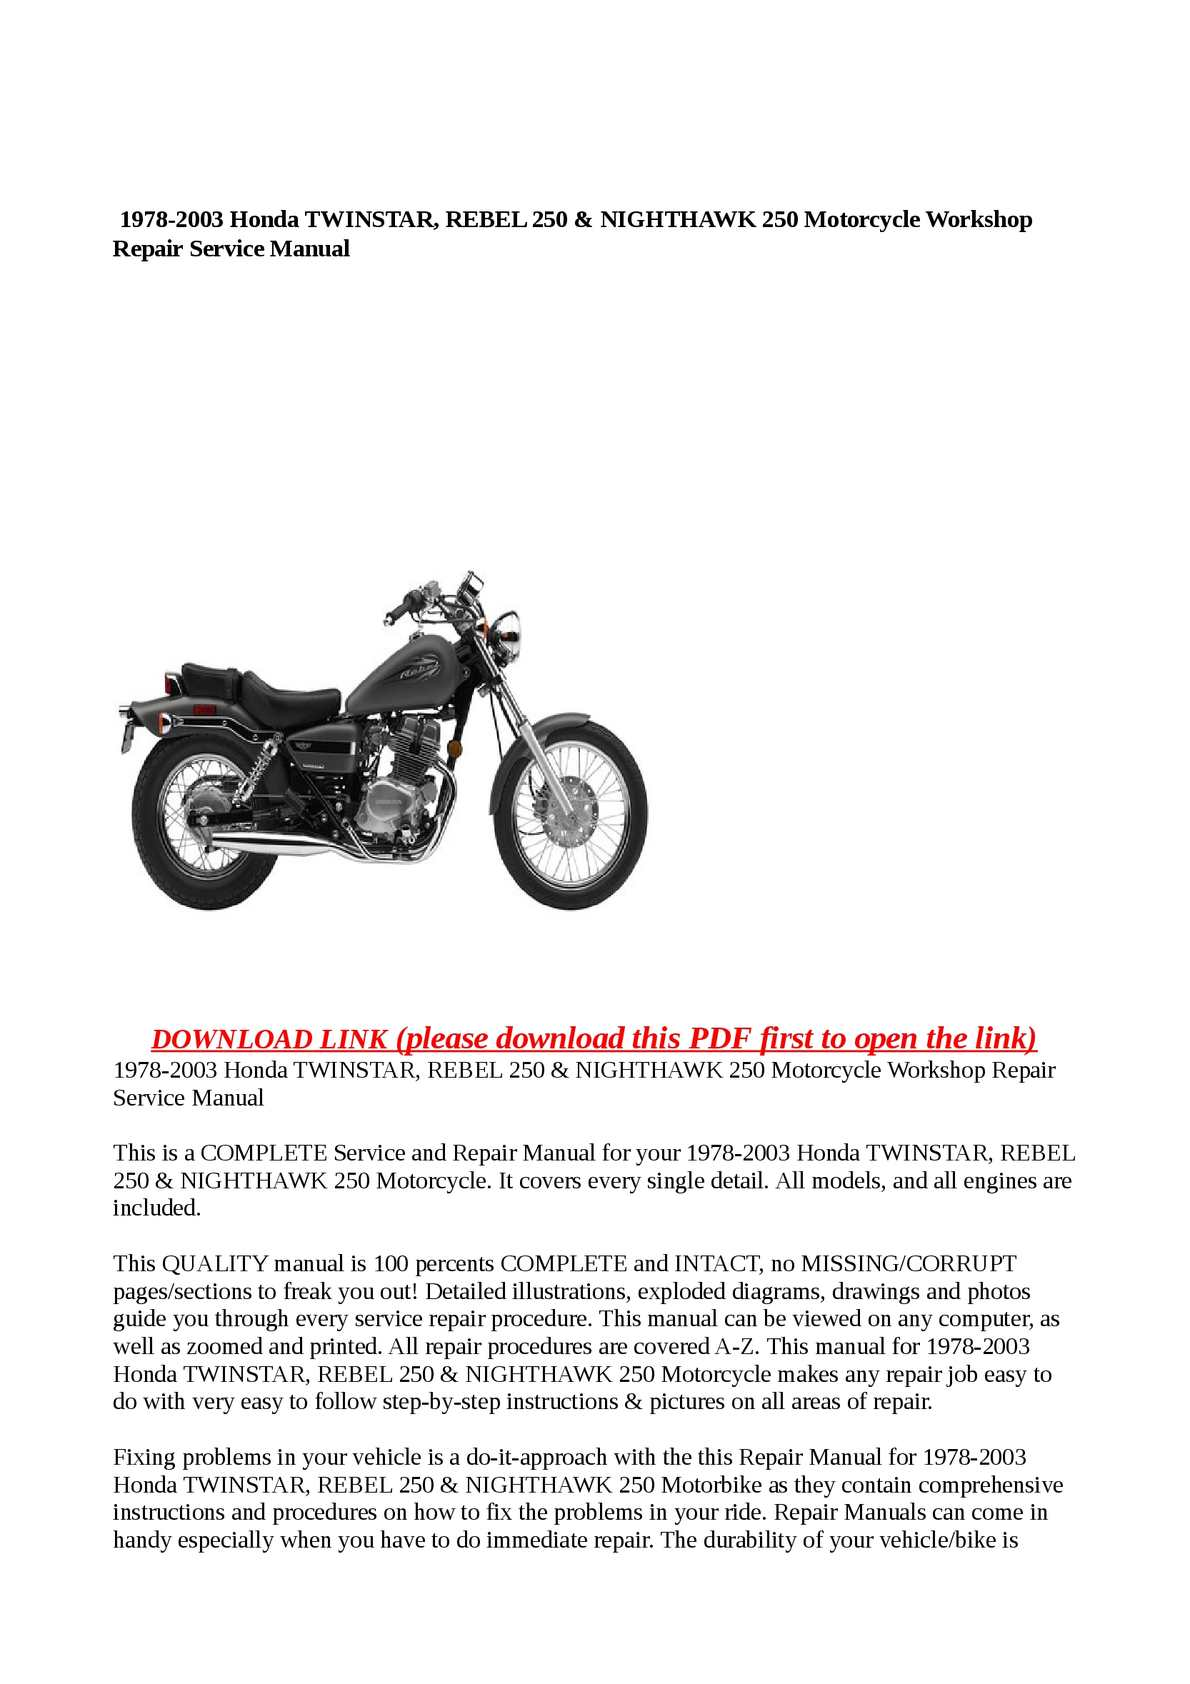 hight resolution of calam o 1978 2003 honda twinstar rebel 250 nighthawk 250 motorcycle workshop repair service manual